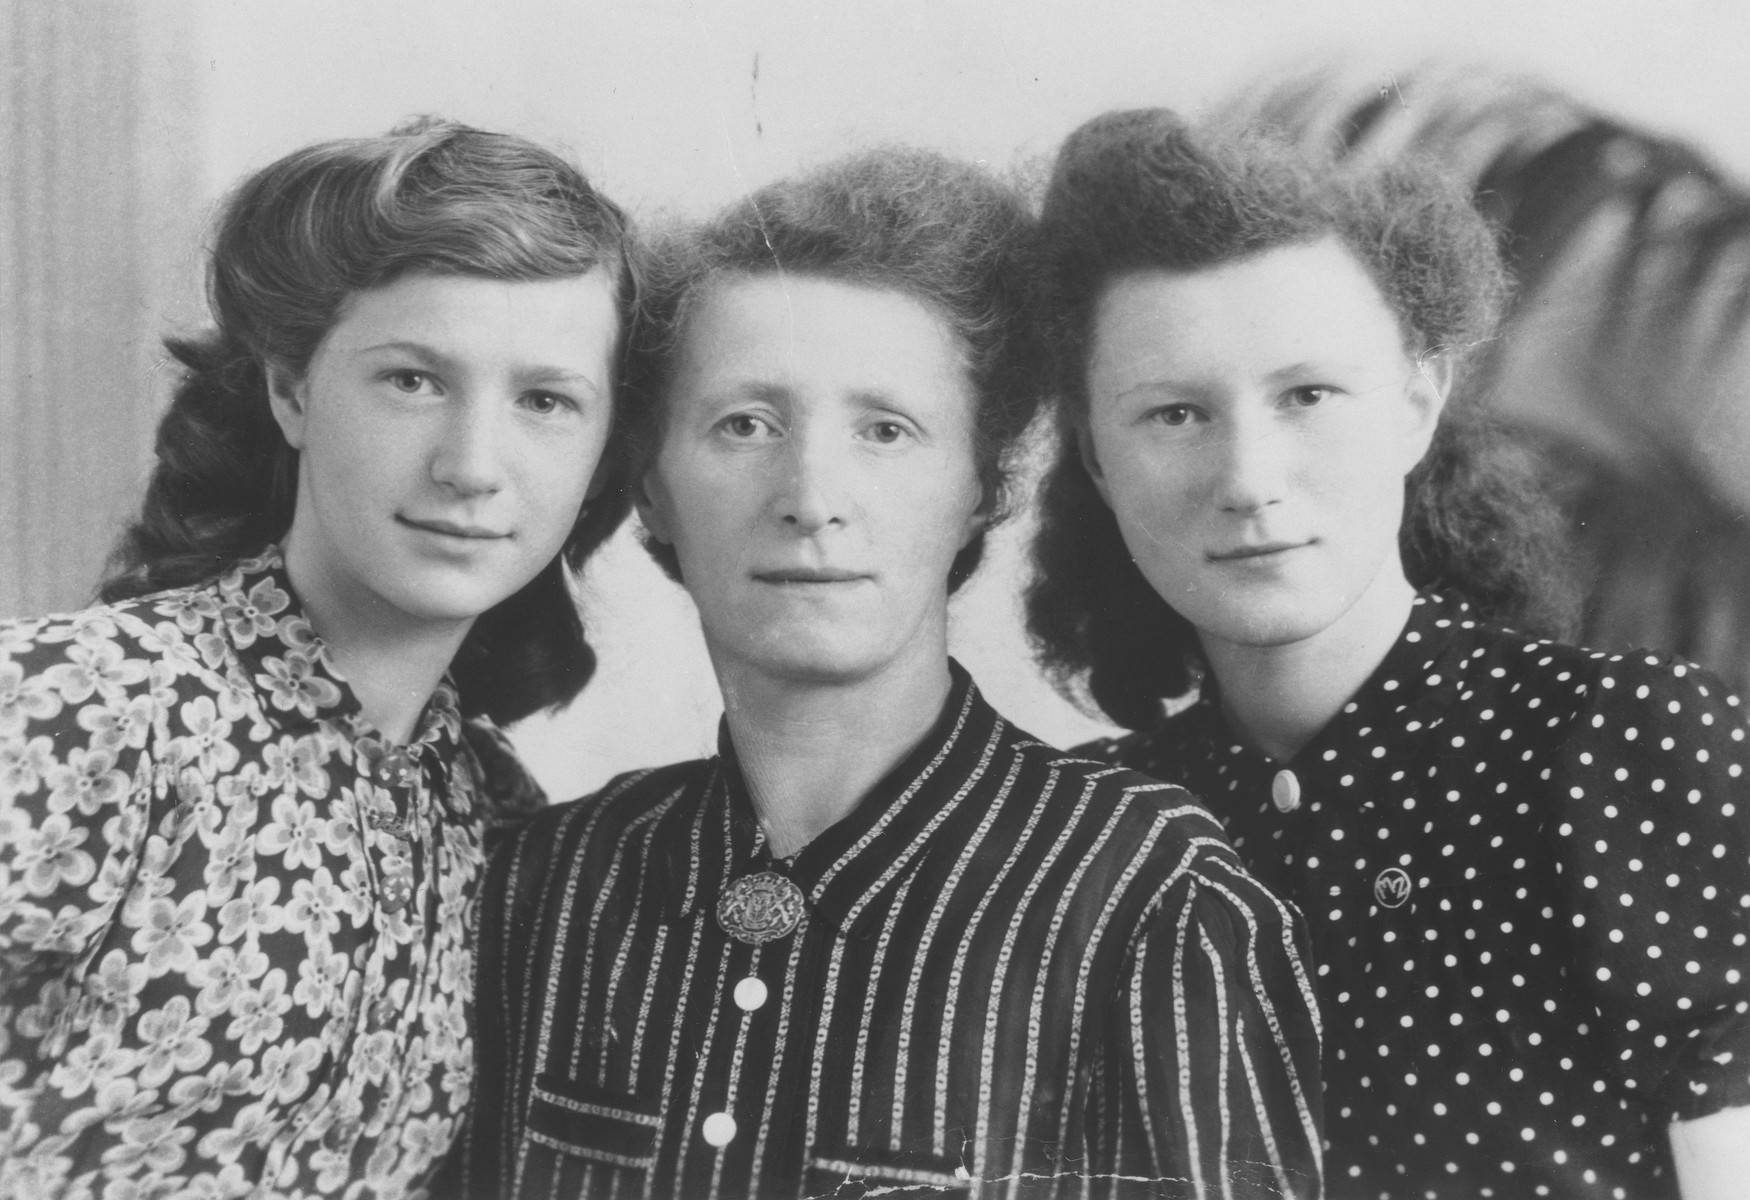 Portrait of a Dutch Jewish woman with her two daughters in the Westerbork transit camp.  Pictured are Gisela Zimet (center) with her two daughters, Salla (left) and Minna (right).